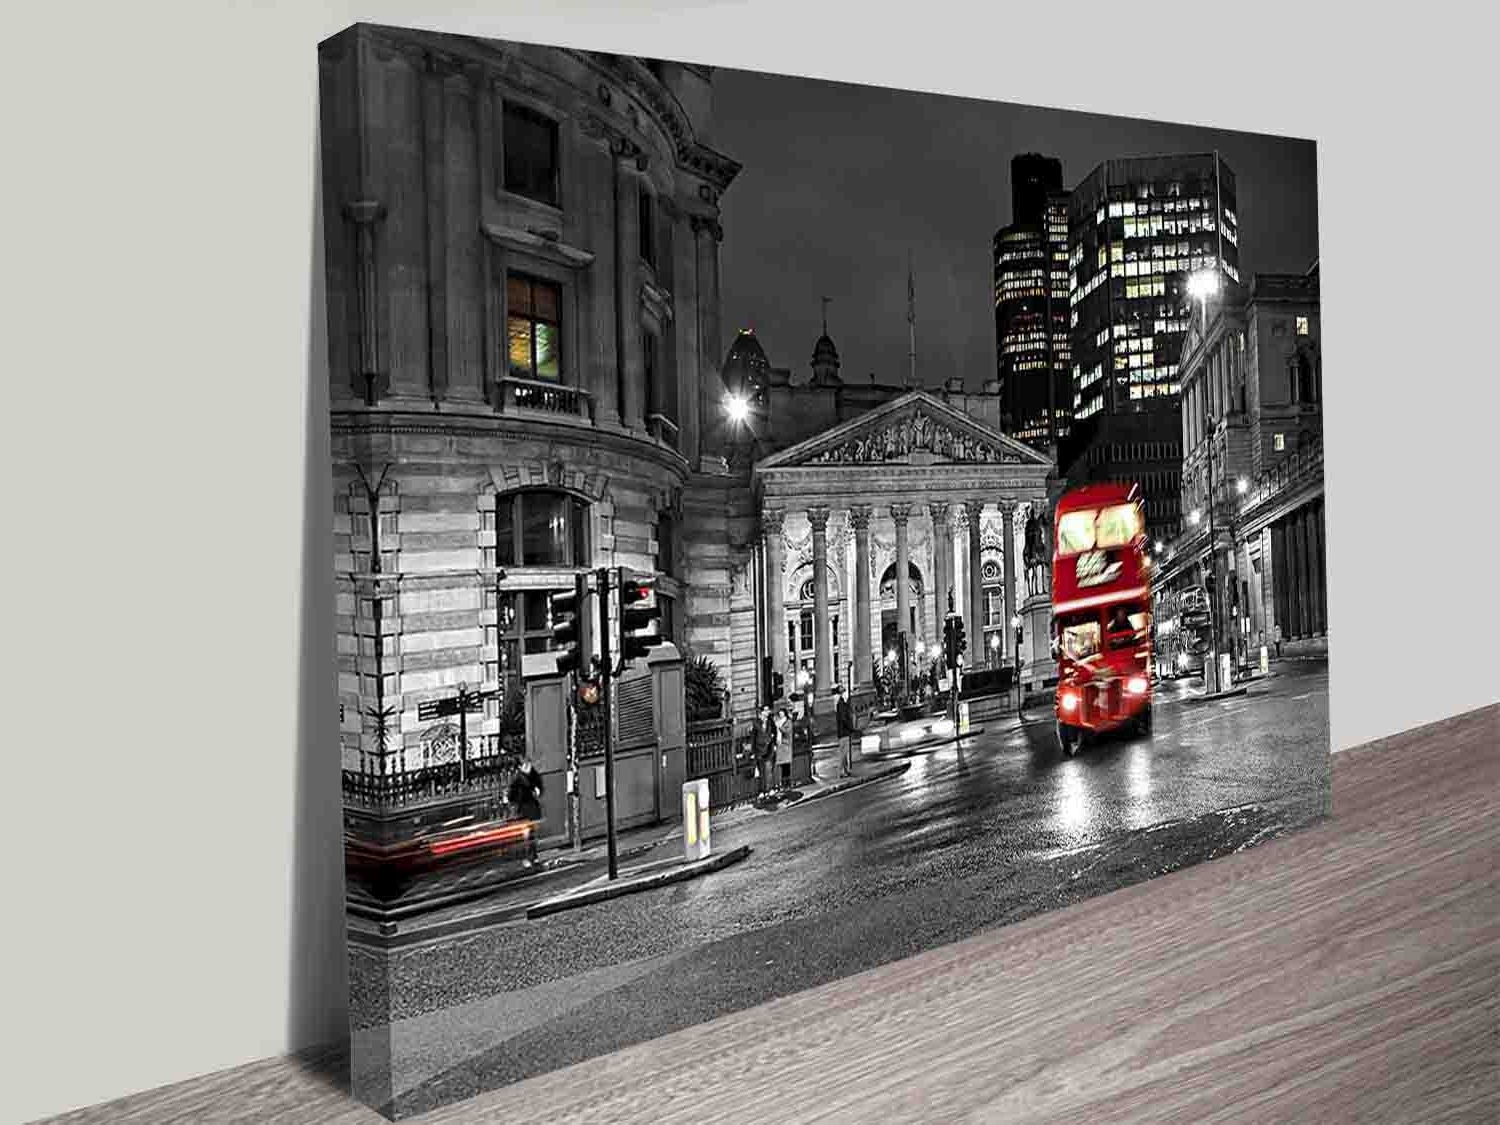 London Scene Wall Art Pertaining To Trendy Red Double Decker Bus Black And White City Scene Wall Art (View 8 of 15)